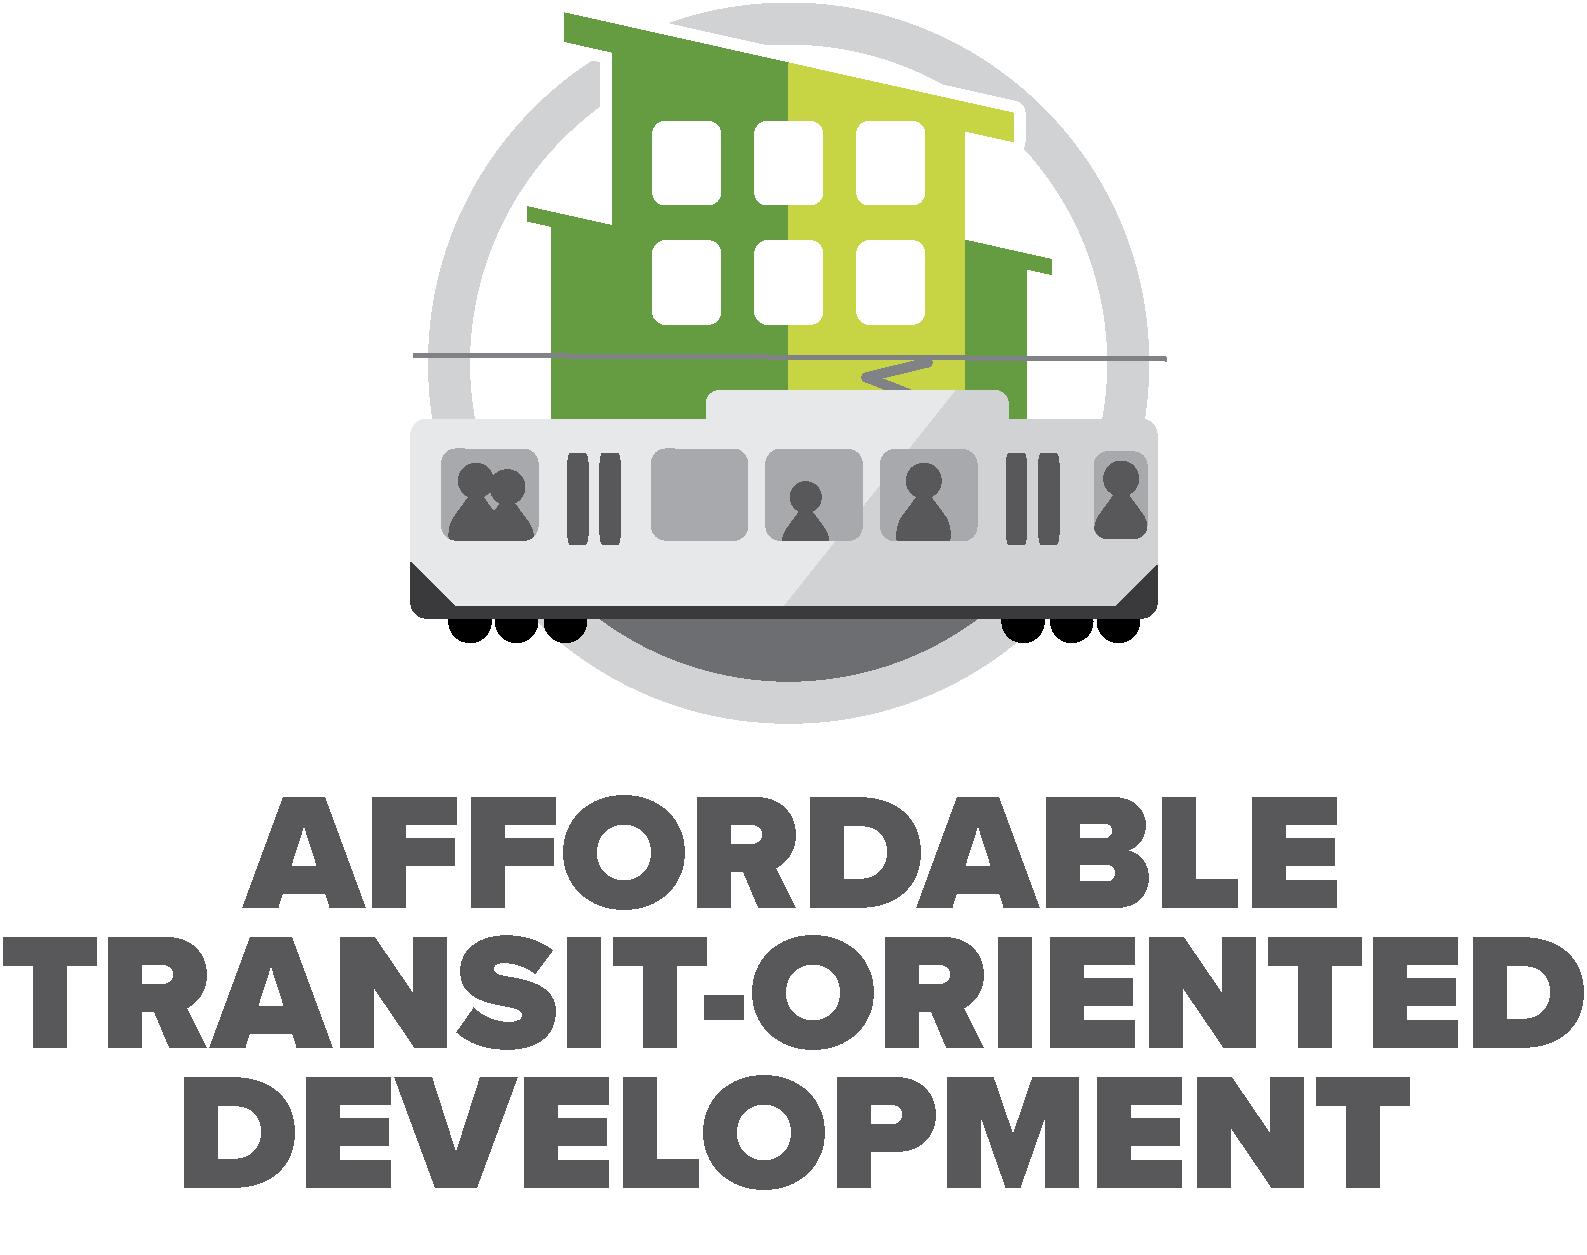 affordable transit oriented development